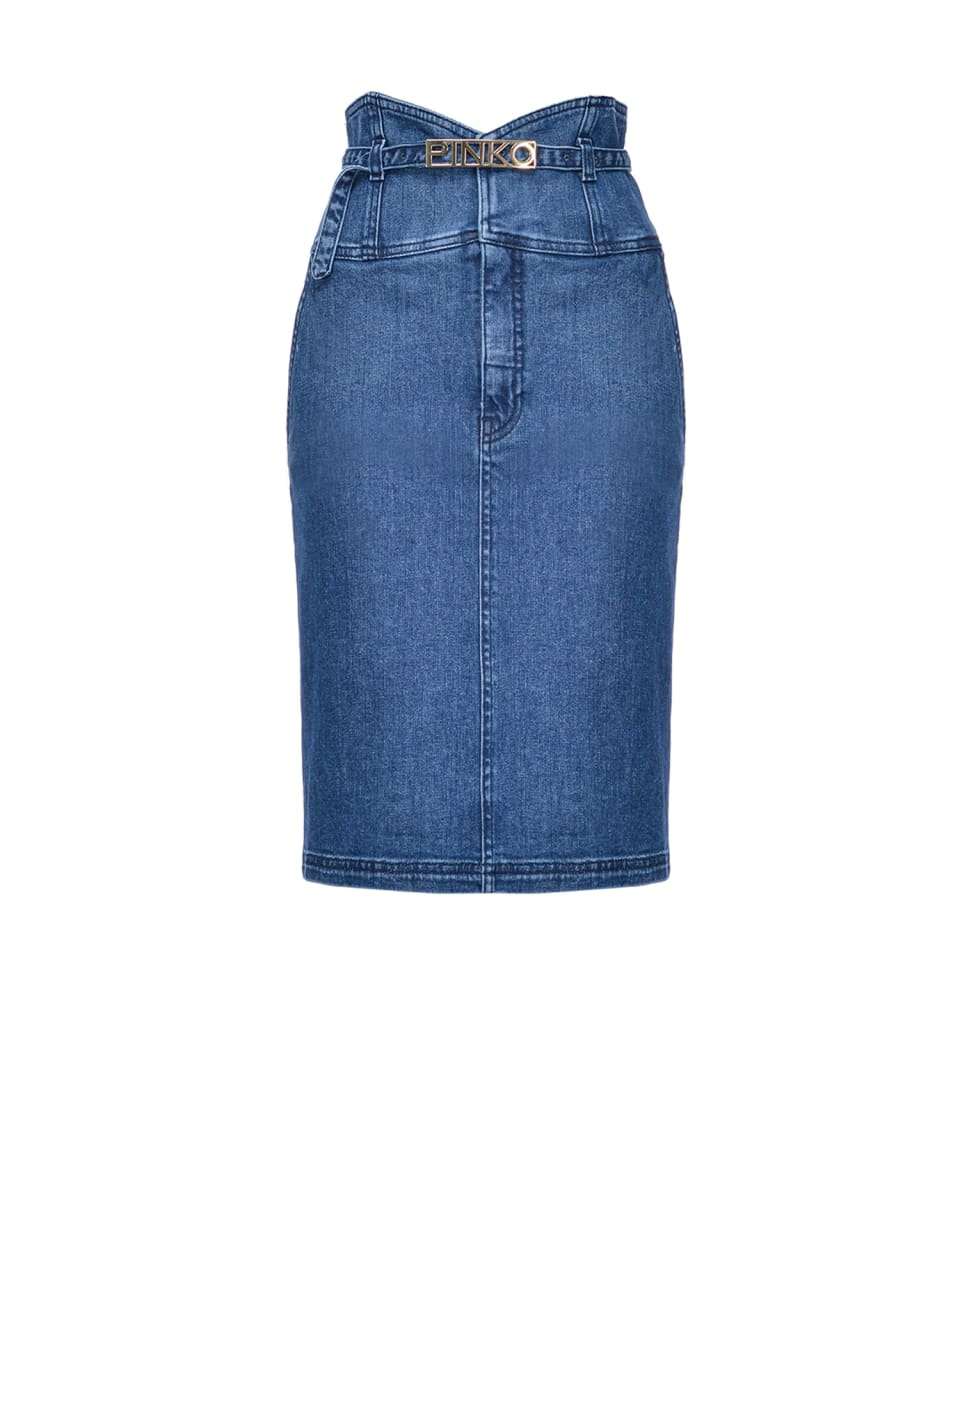 Gonna longuette bustier in comfort denim - Pinko